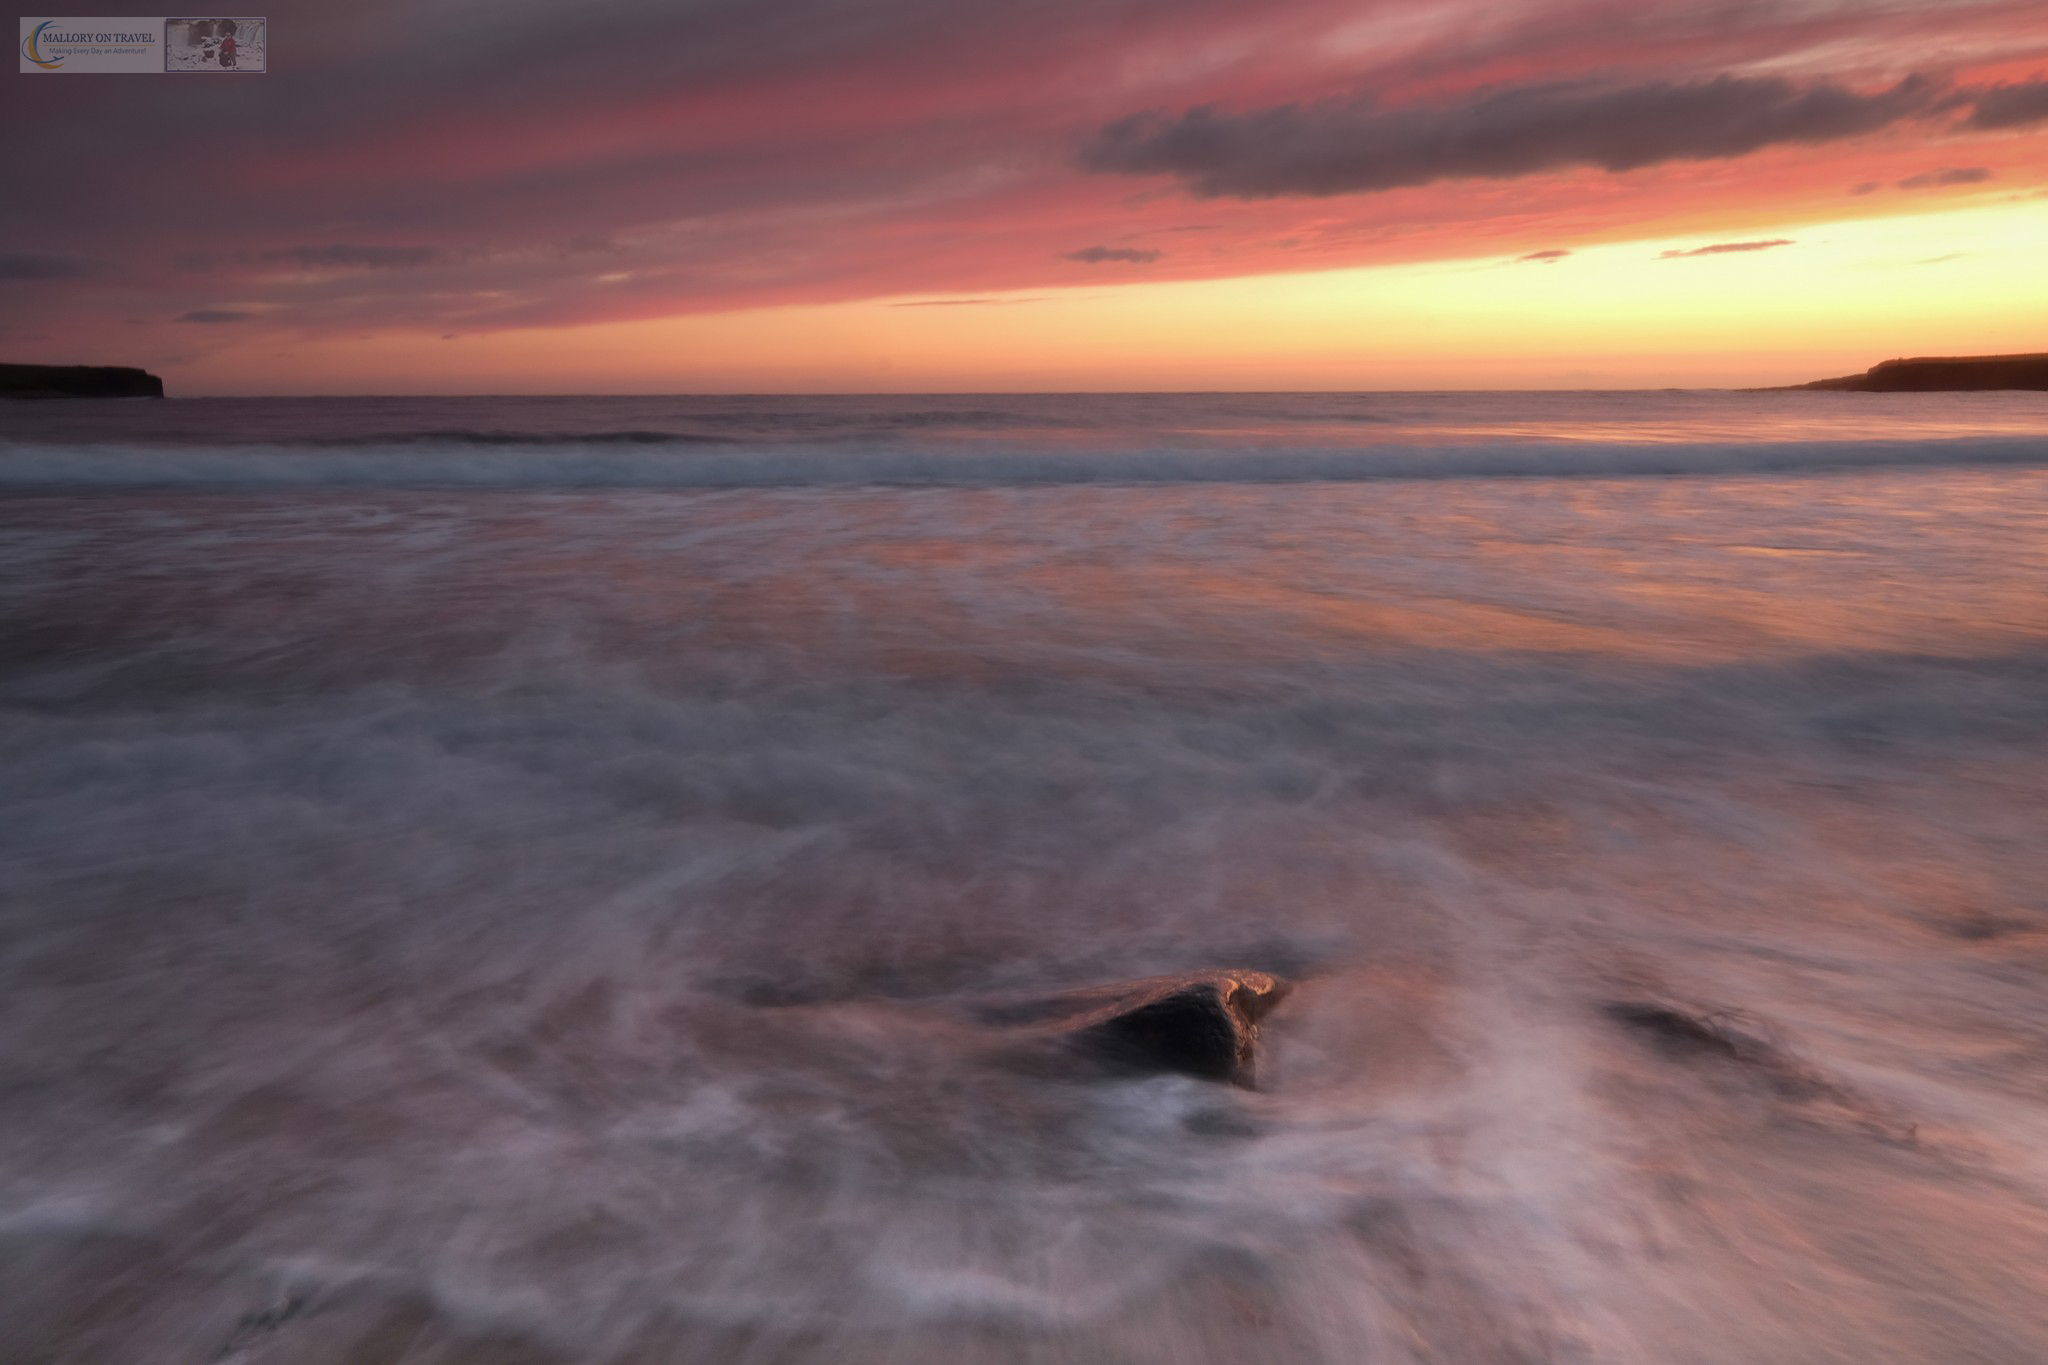 Sunset at Skaill Bay on the Island of Orkney in the highlands and islands of Scotland on Mallory on Travel adventure travel, photography, travel iain-mallory_scotland3435